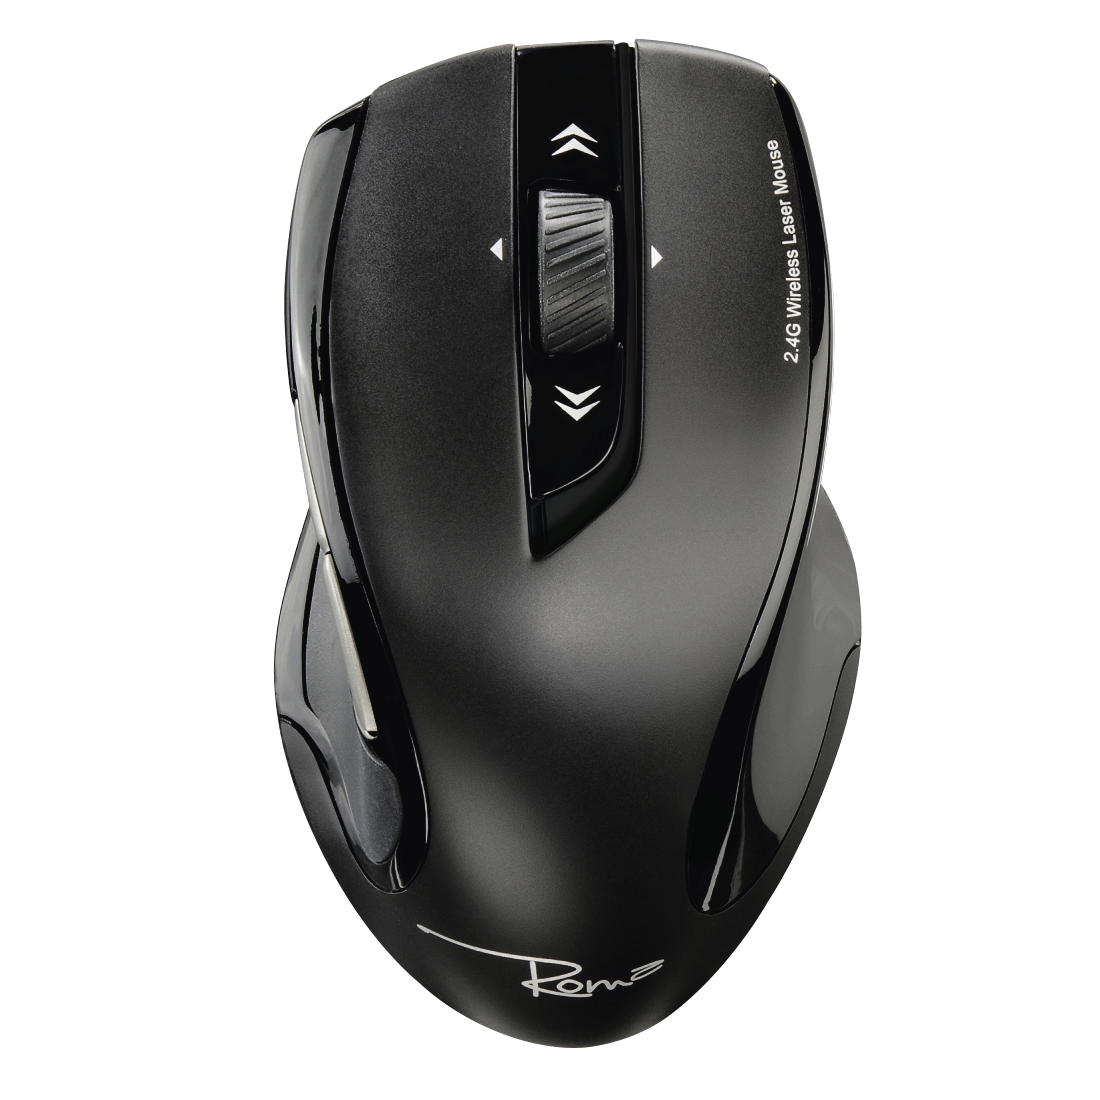 HAMA RM322 Optical Mouse Driver for PC